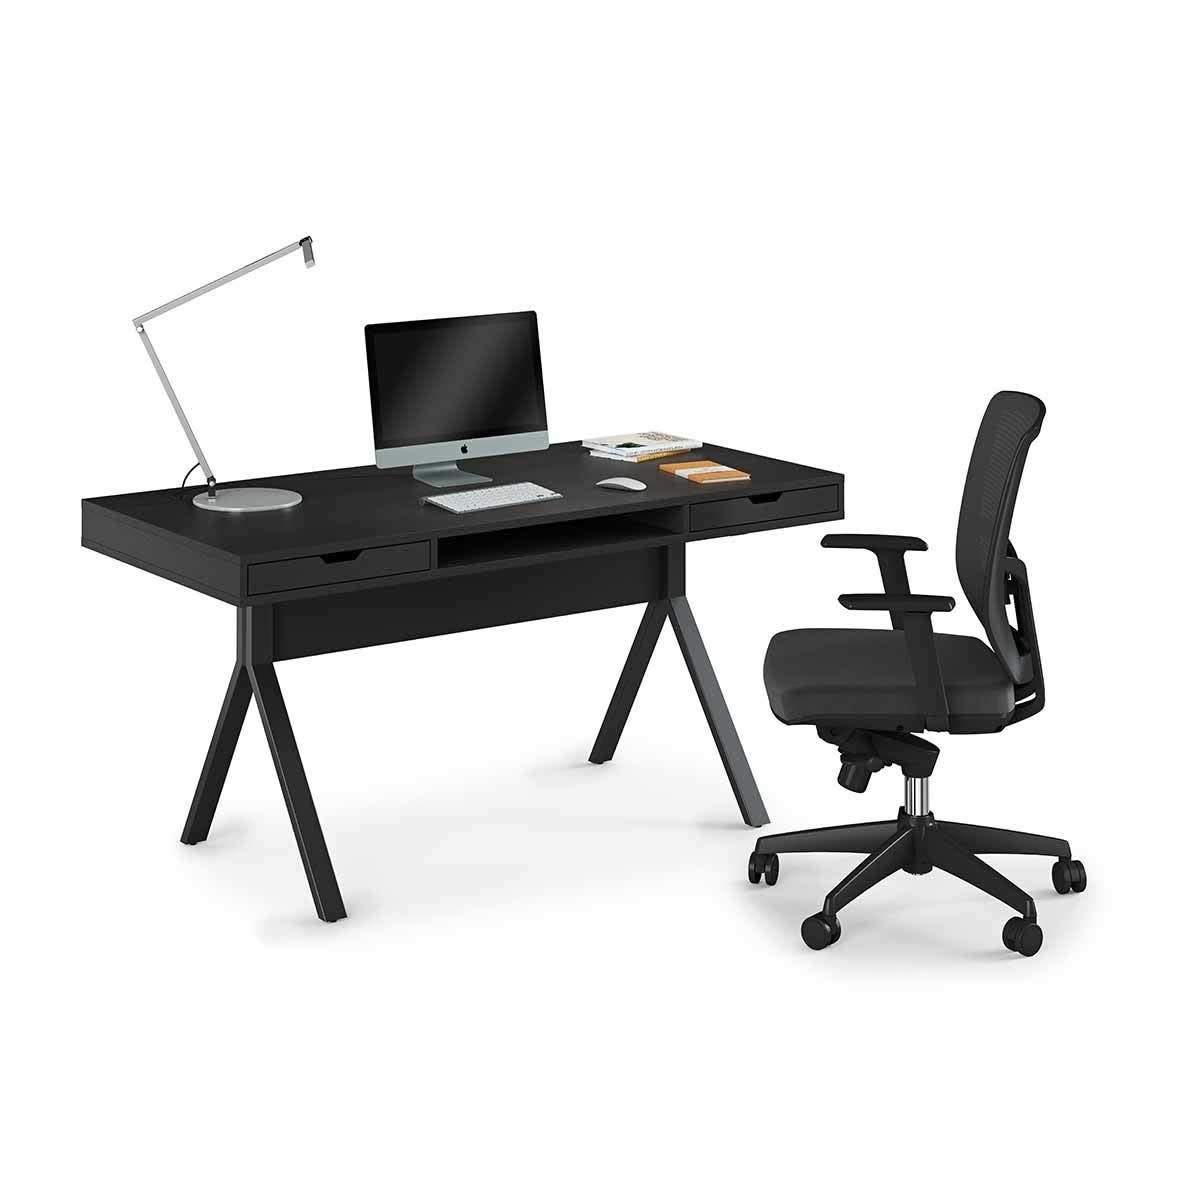 BDI Modica 6341 Desk with Open Center Compartment and Two Side Storage Drawers